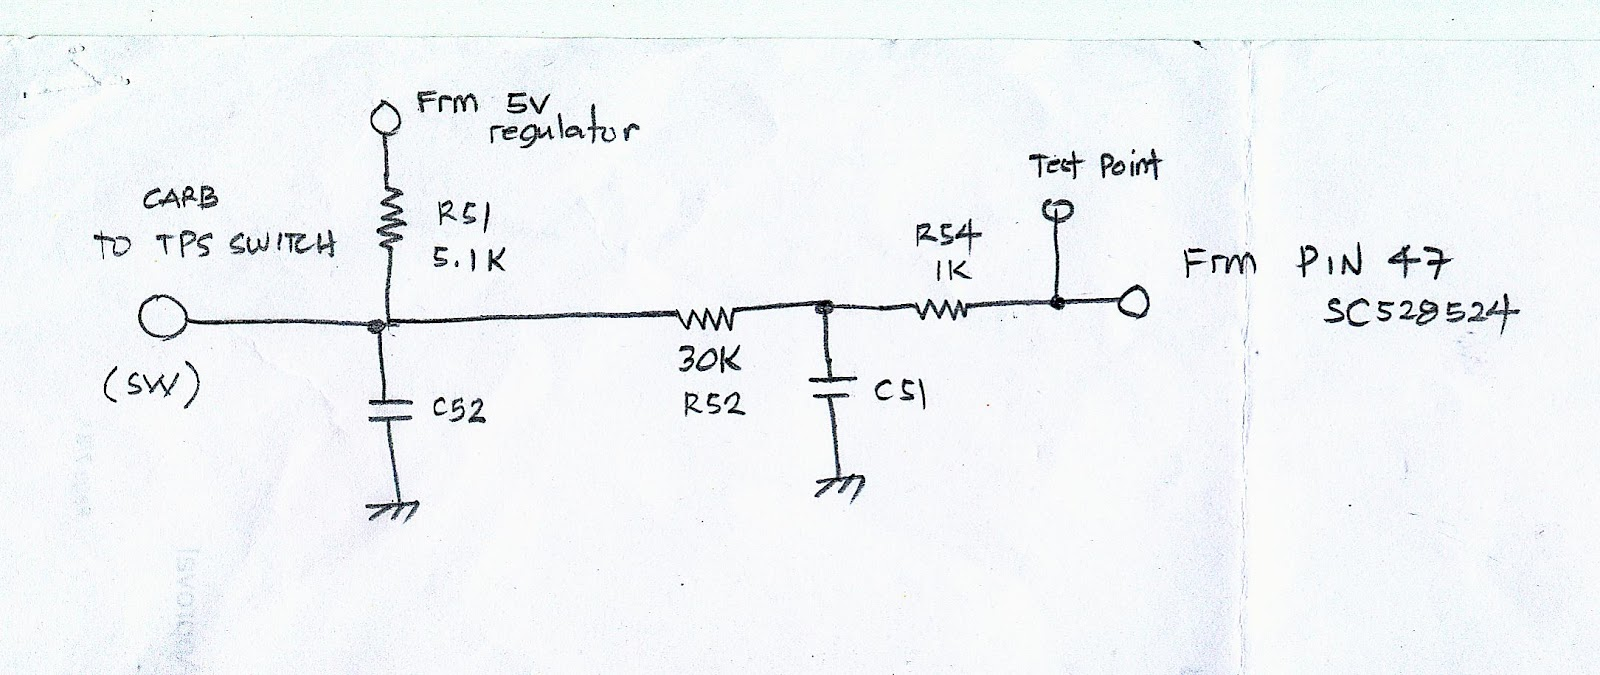 hight resolution of wiring diagrams kfx450r wiring diagram kawasaki ninja wiring diagrams